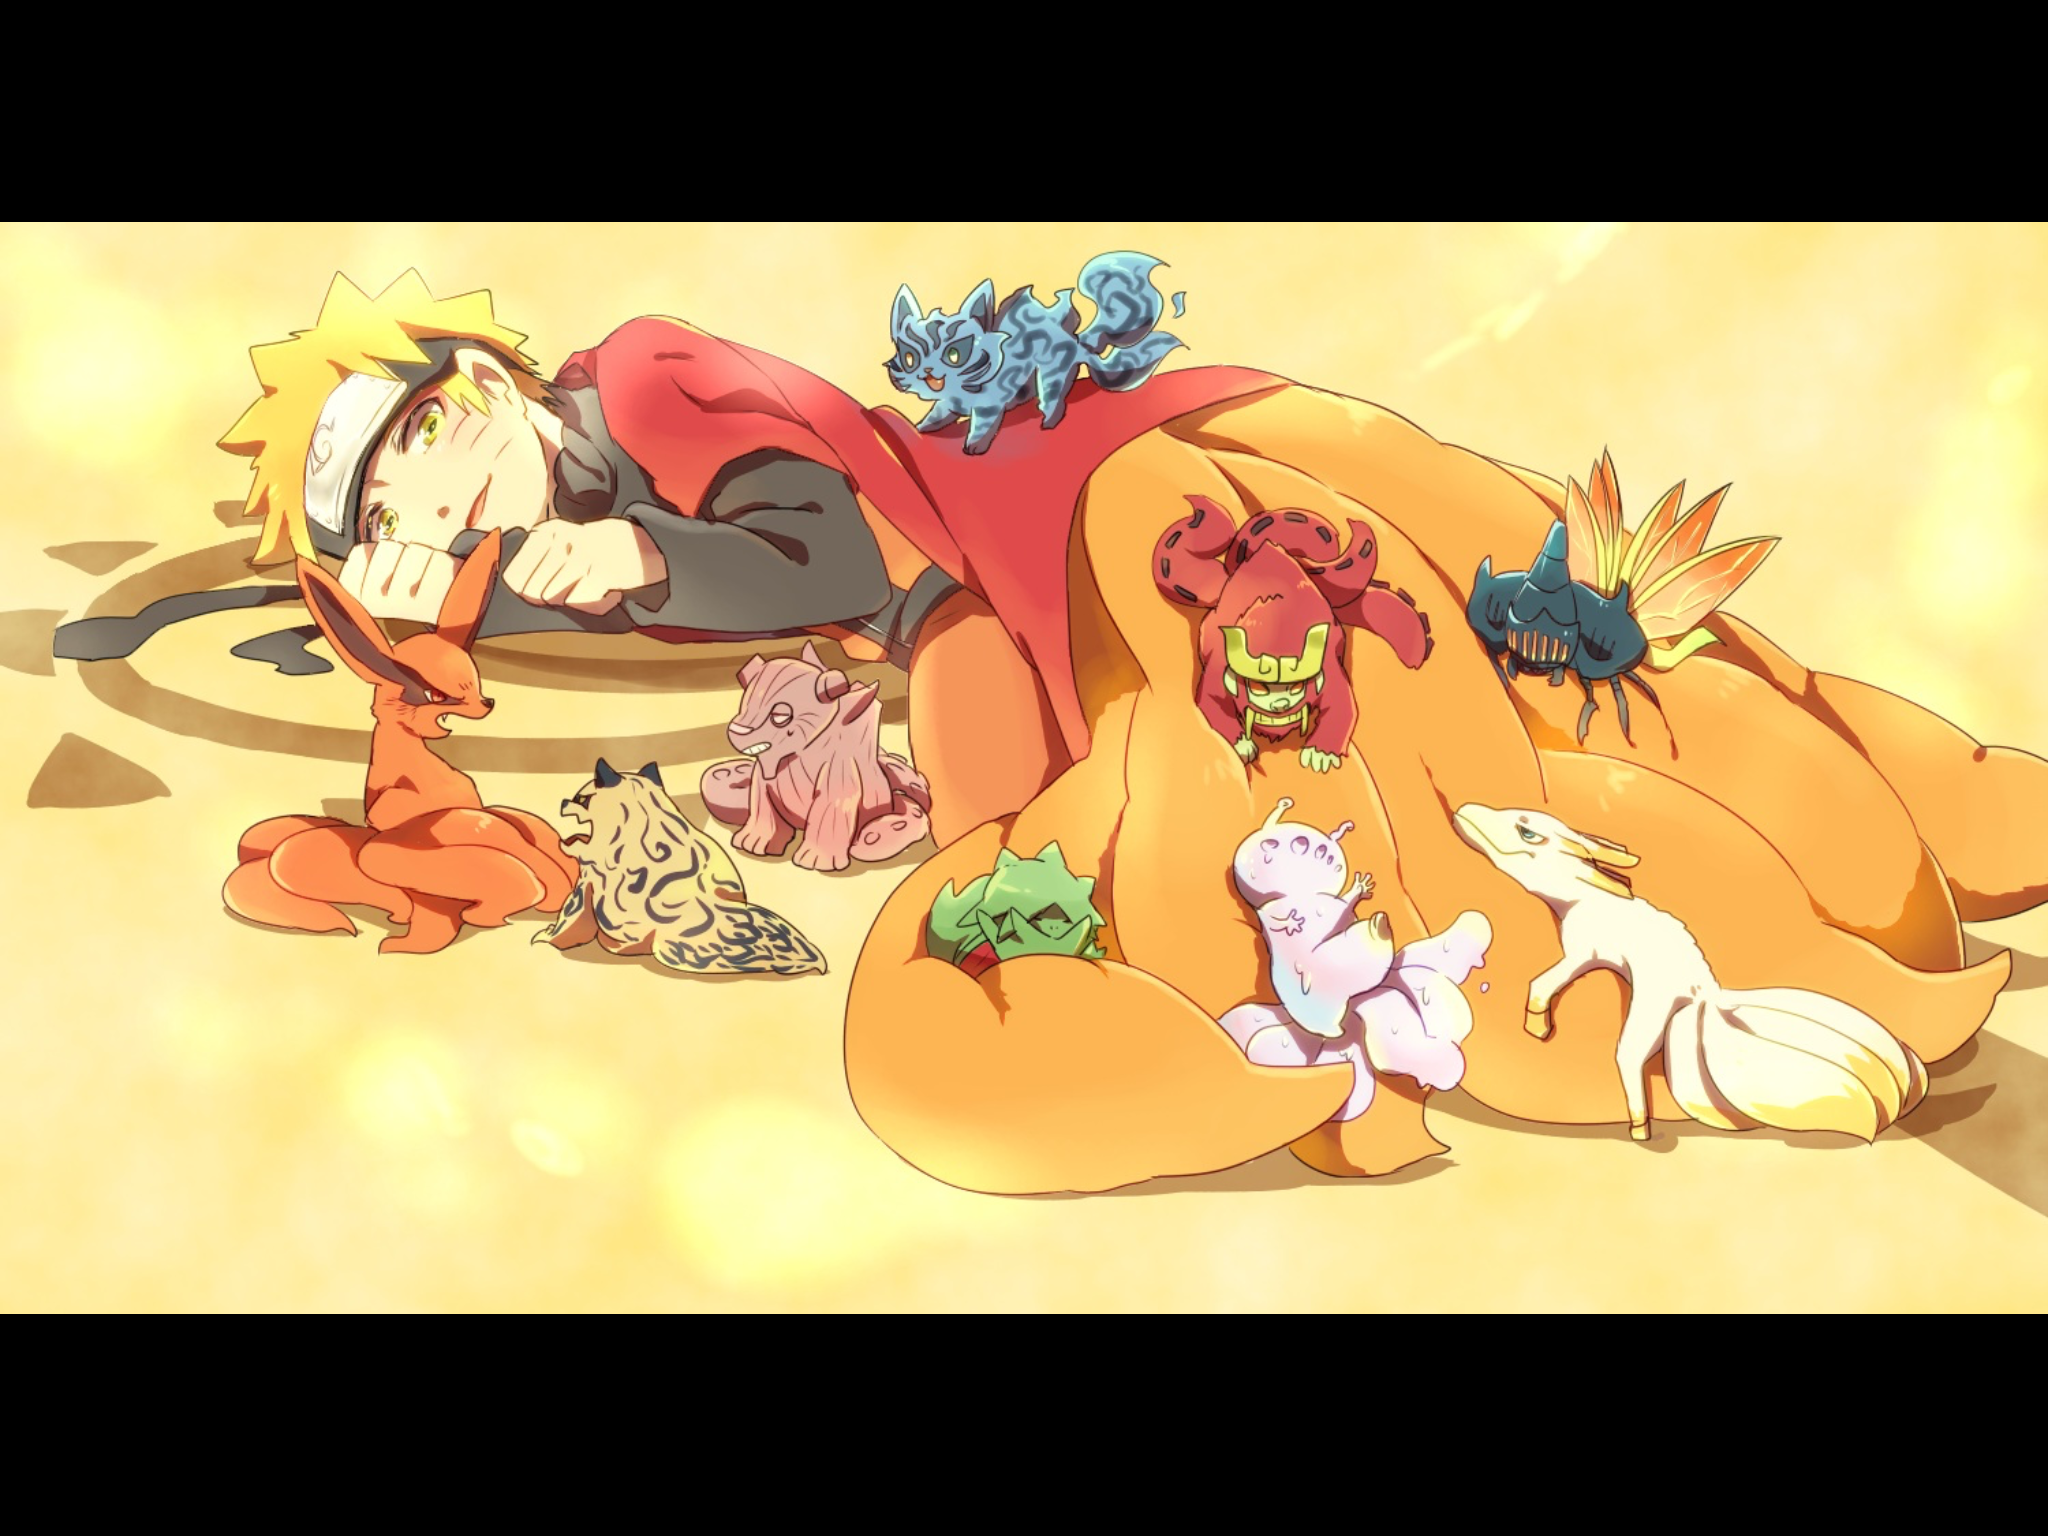 naruto and the nine tails chibi form cute anime stuff